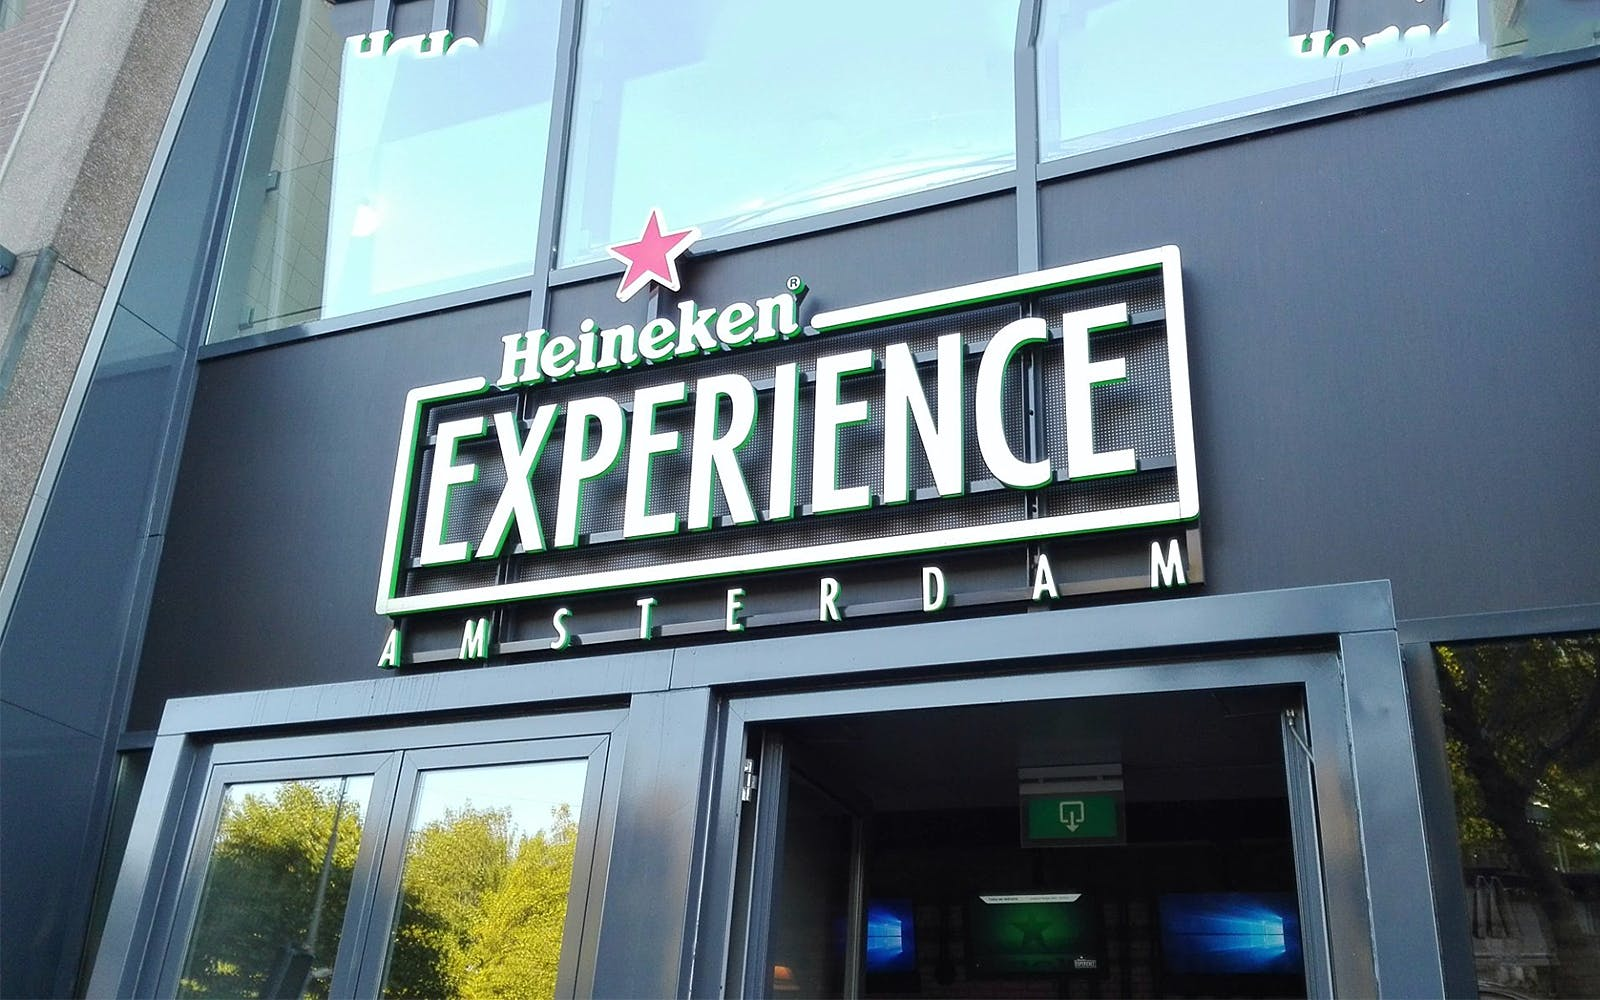 Amsterdam Canal Cruise and Heineken Experience Tickets